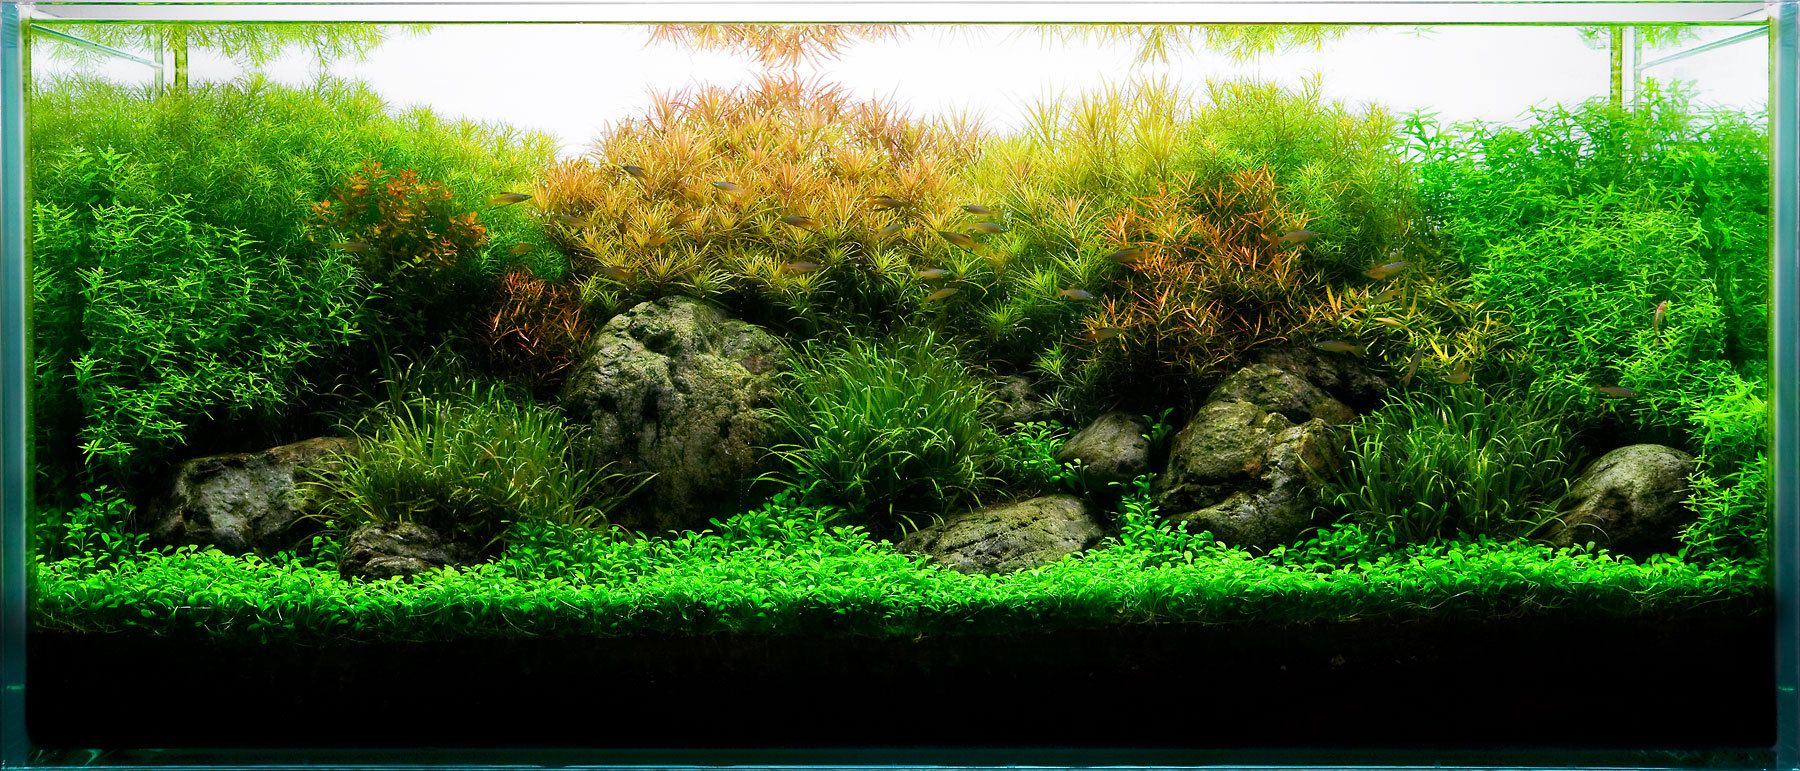 Aquarium design group a planted aquarium with for Planted tank fish